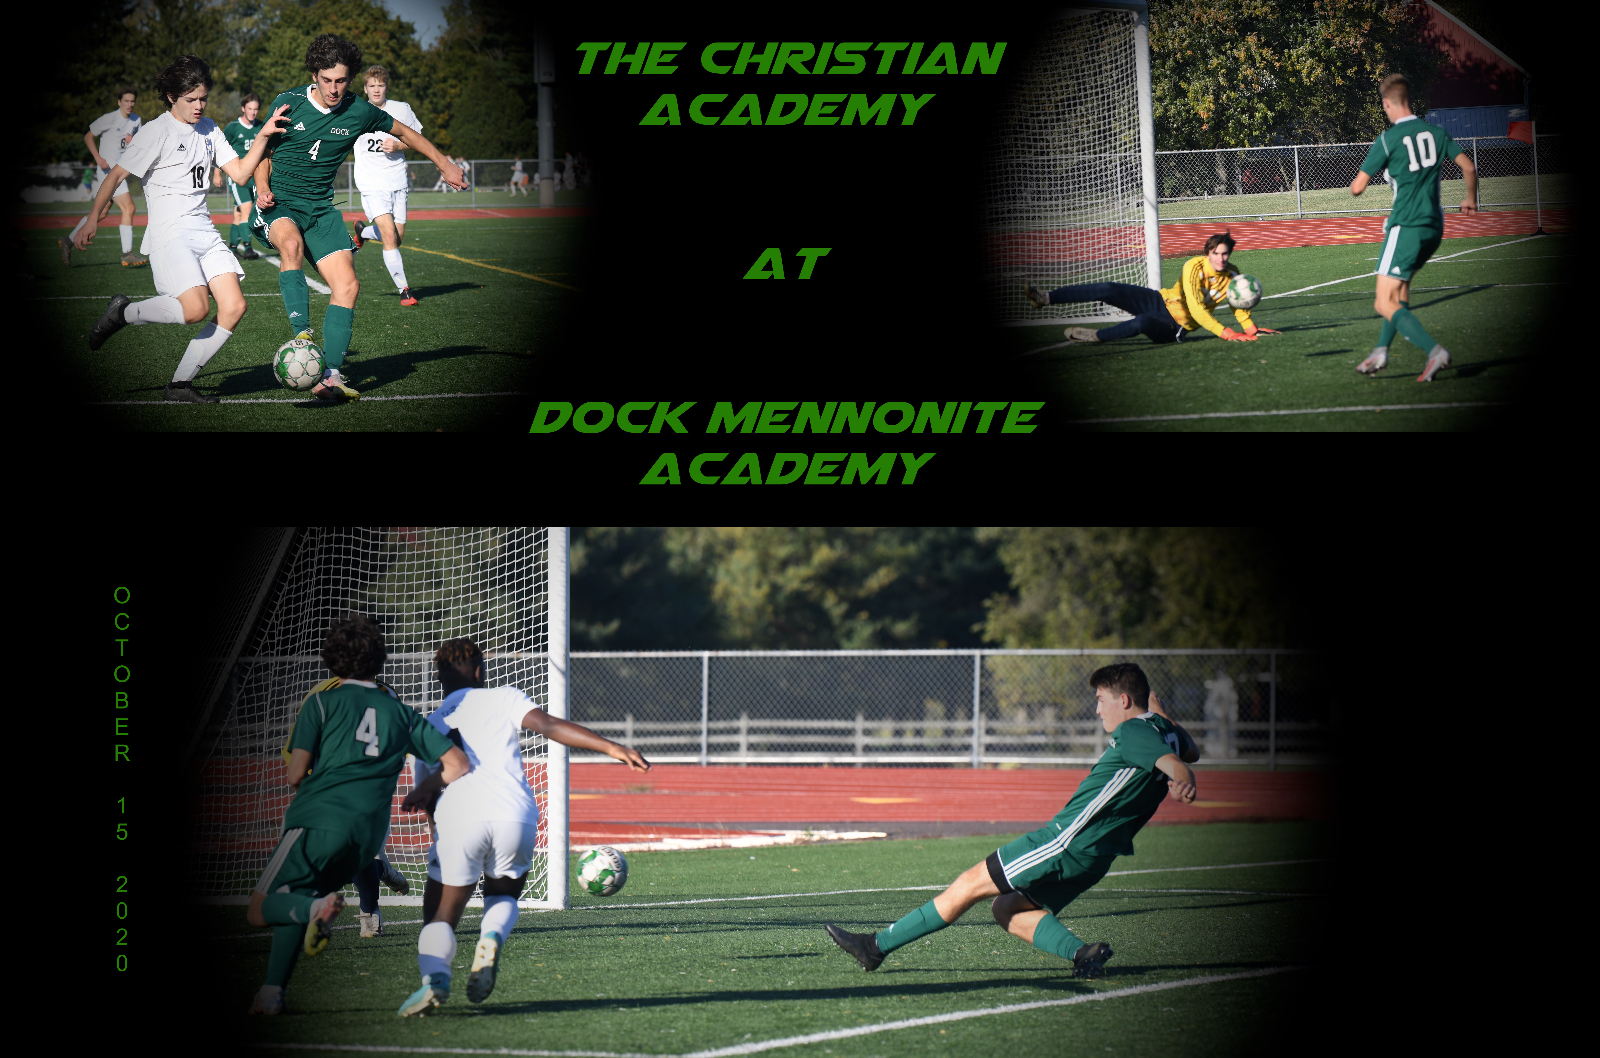 Dock vs The Christian Academy – October 15, 2020